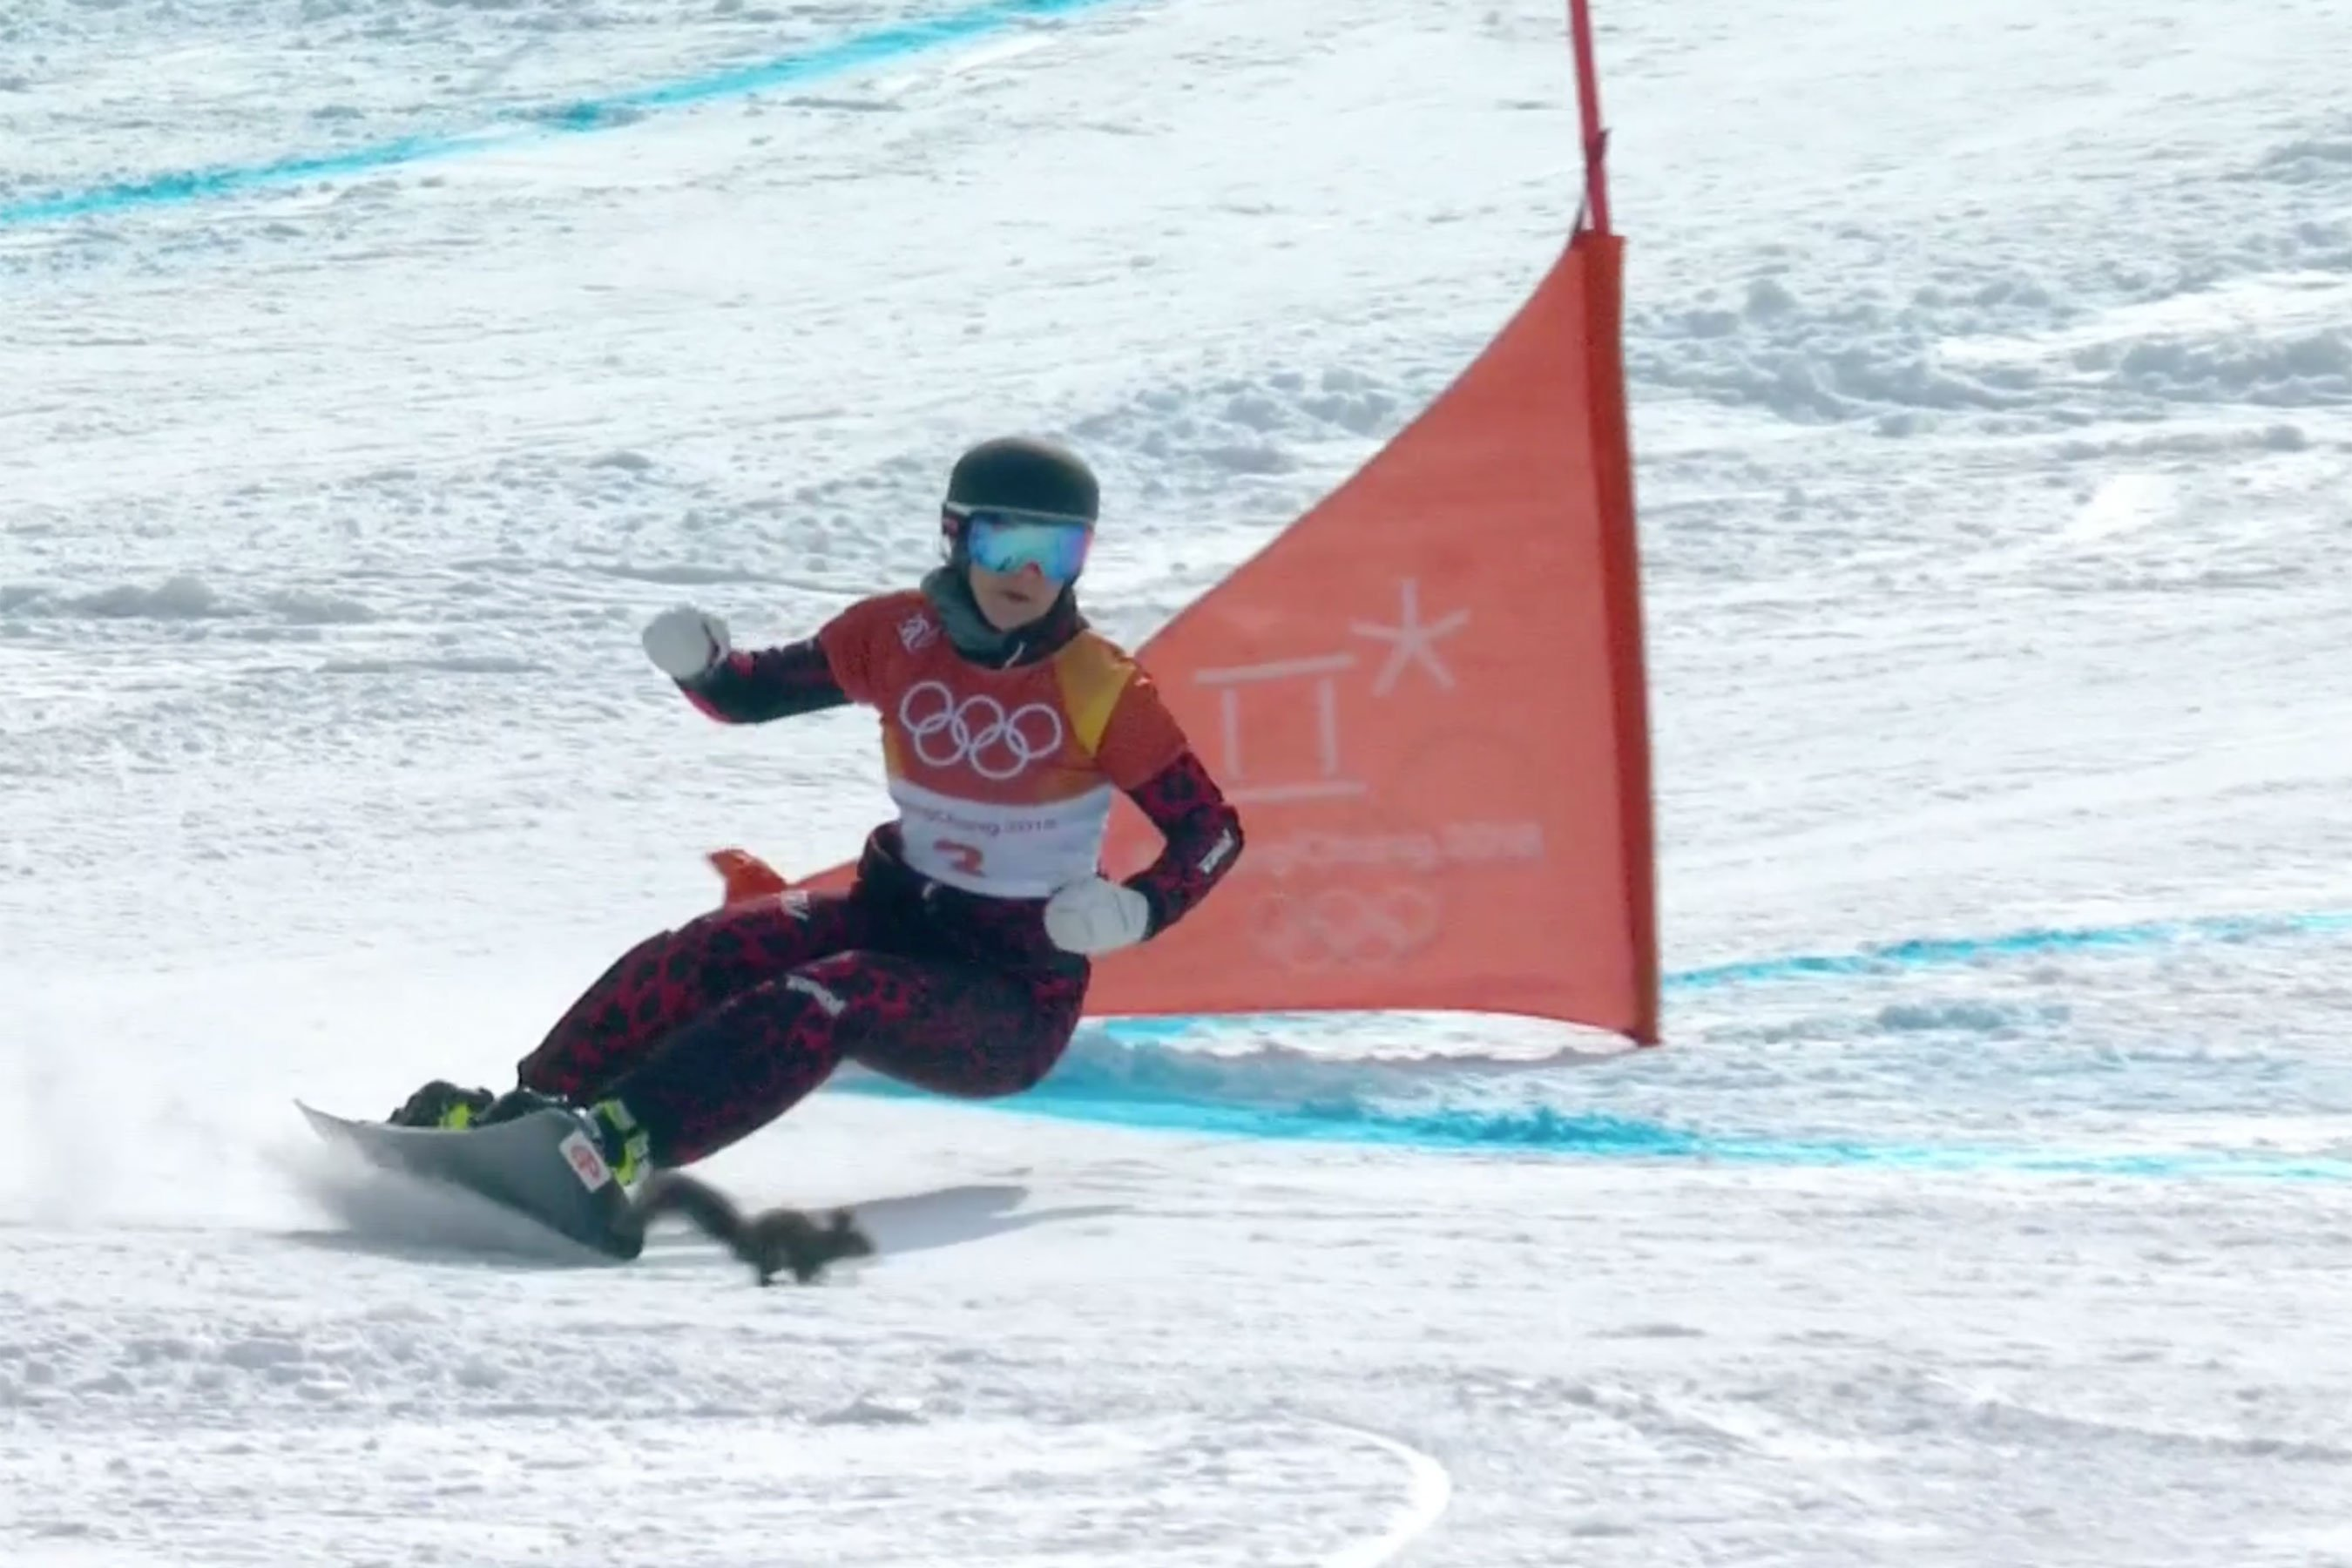 Olympics: Snowboarder Daniela Ulbing and squirrel nearly collide